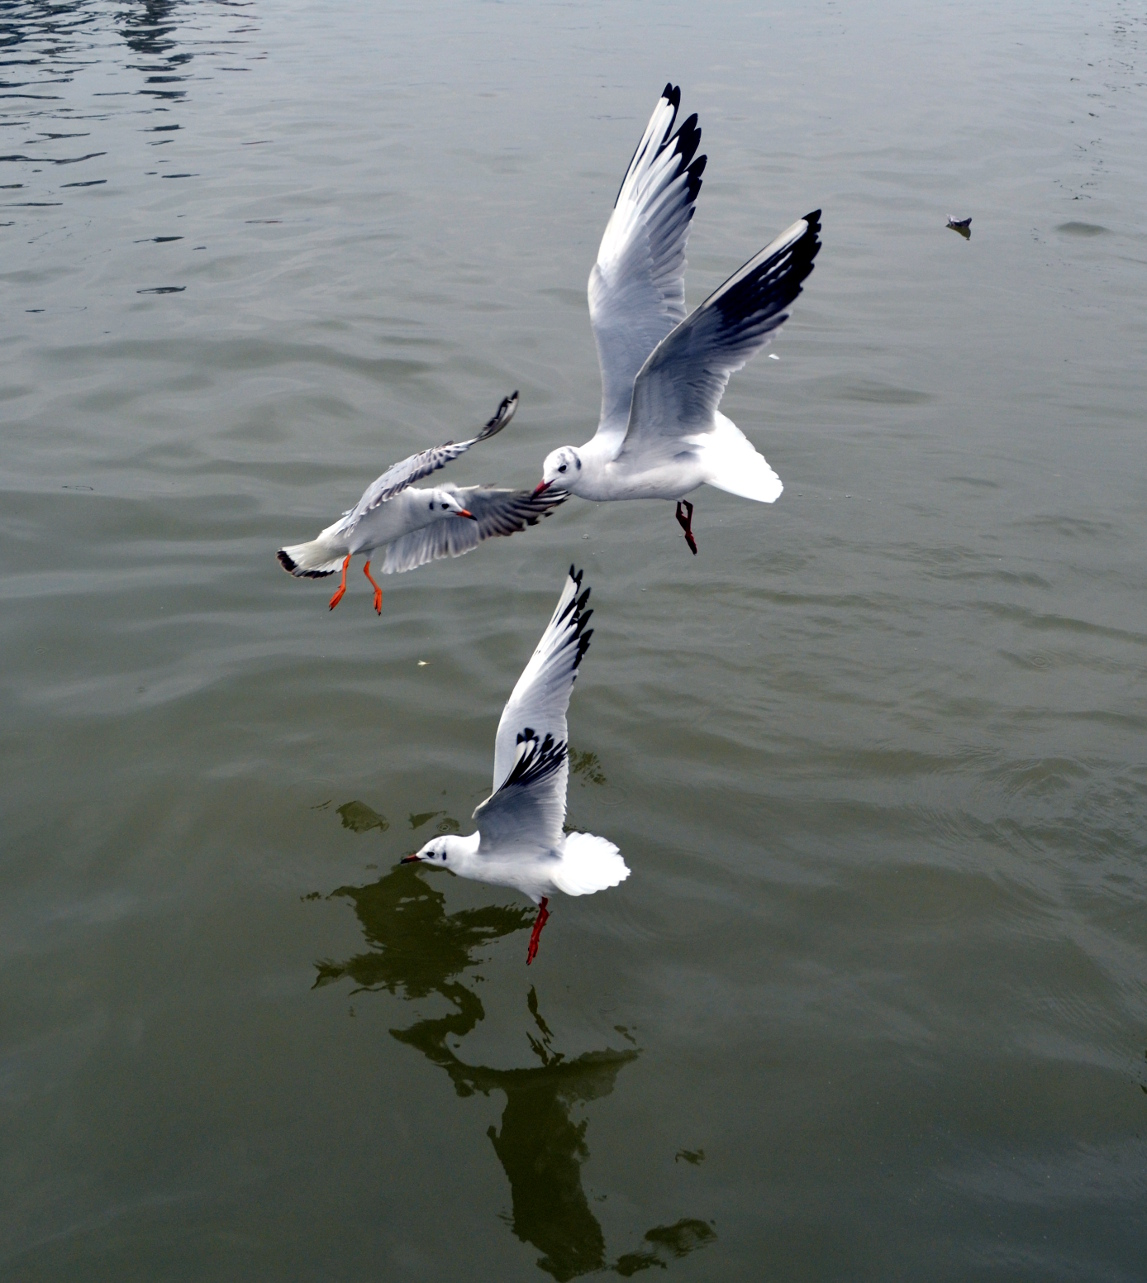 During boating at Triveni Sangam at Allahabad I have  taken this picture. I deem it is bird's paradise.